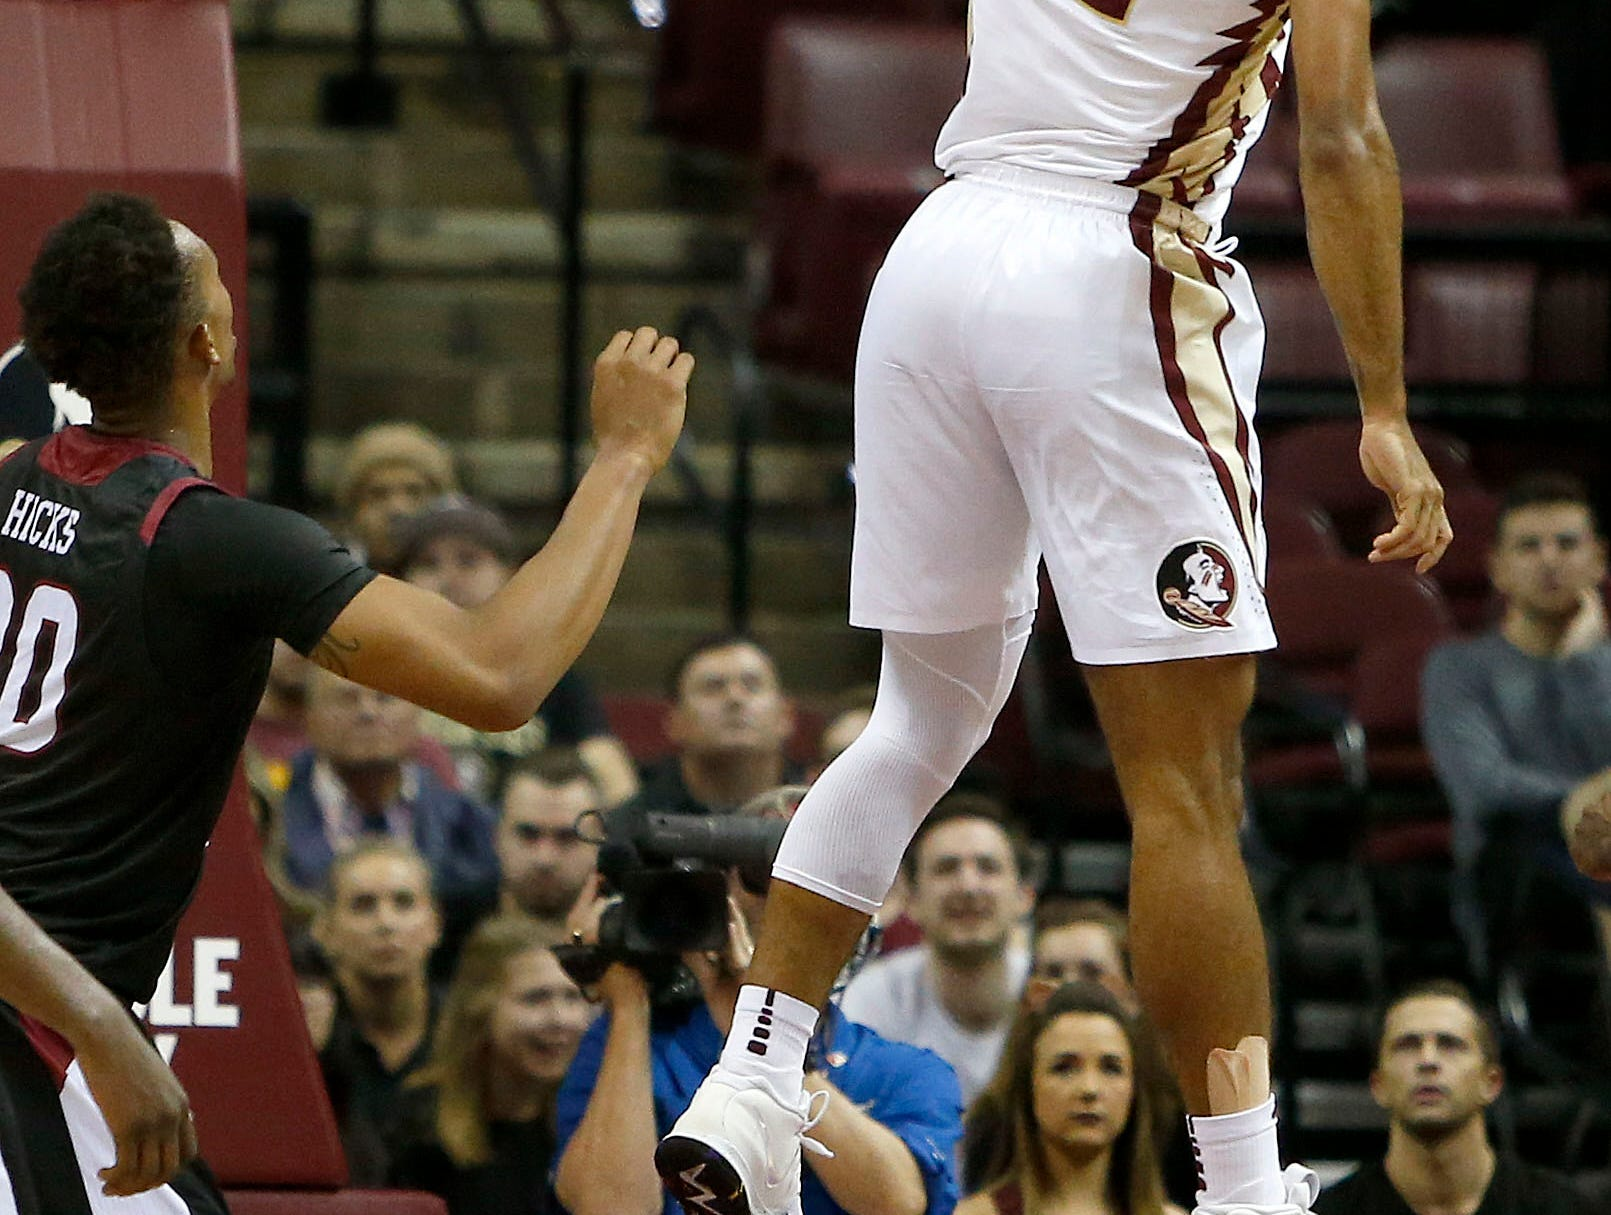 Dec 3, 2018; Tallahassee, FL, USA; Florida State Seminoles guard Anthony Polite (13) dunks abasing the Troy Trojans  at Donald L. Tucker Center during the second half. Mandatory Credit: Glenn Beil-USA TODAY Sports